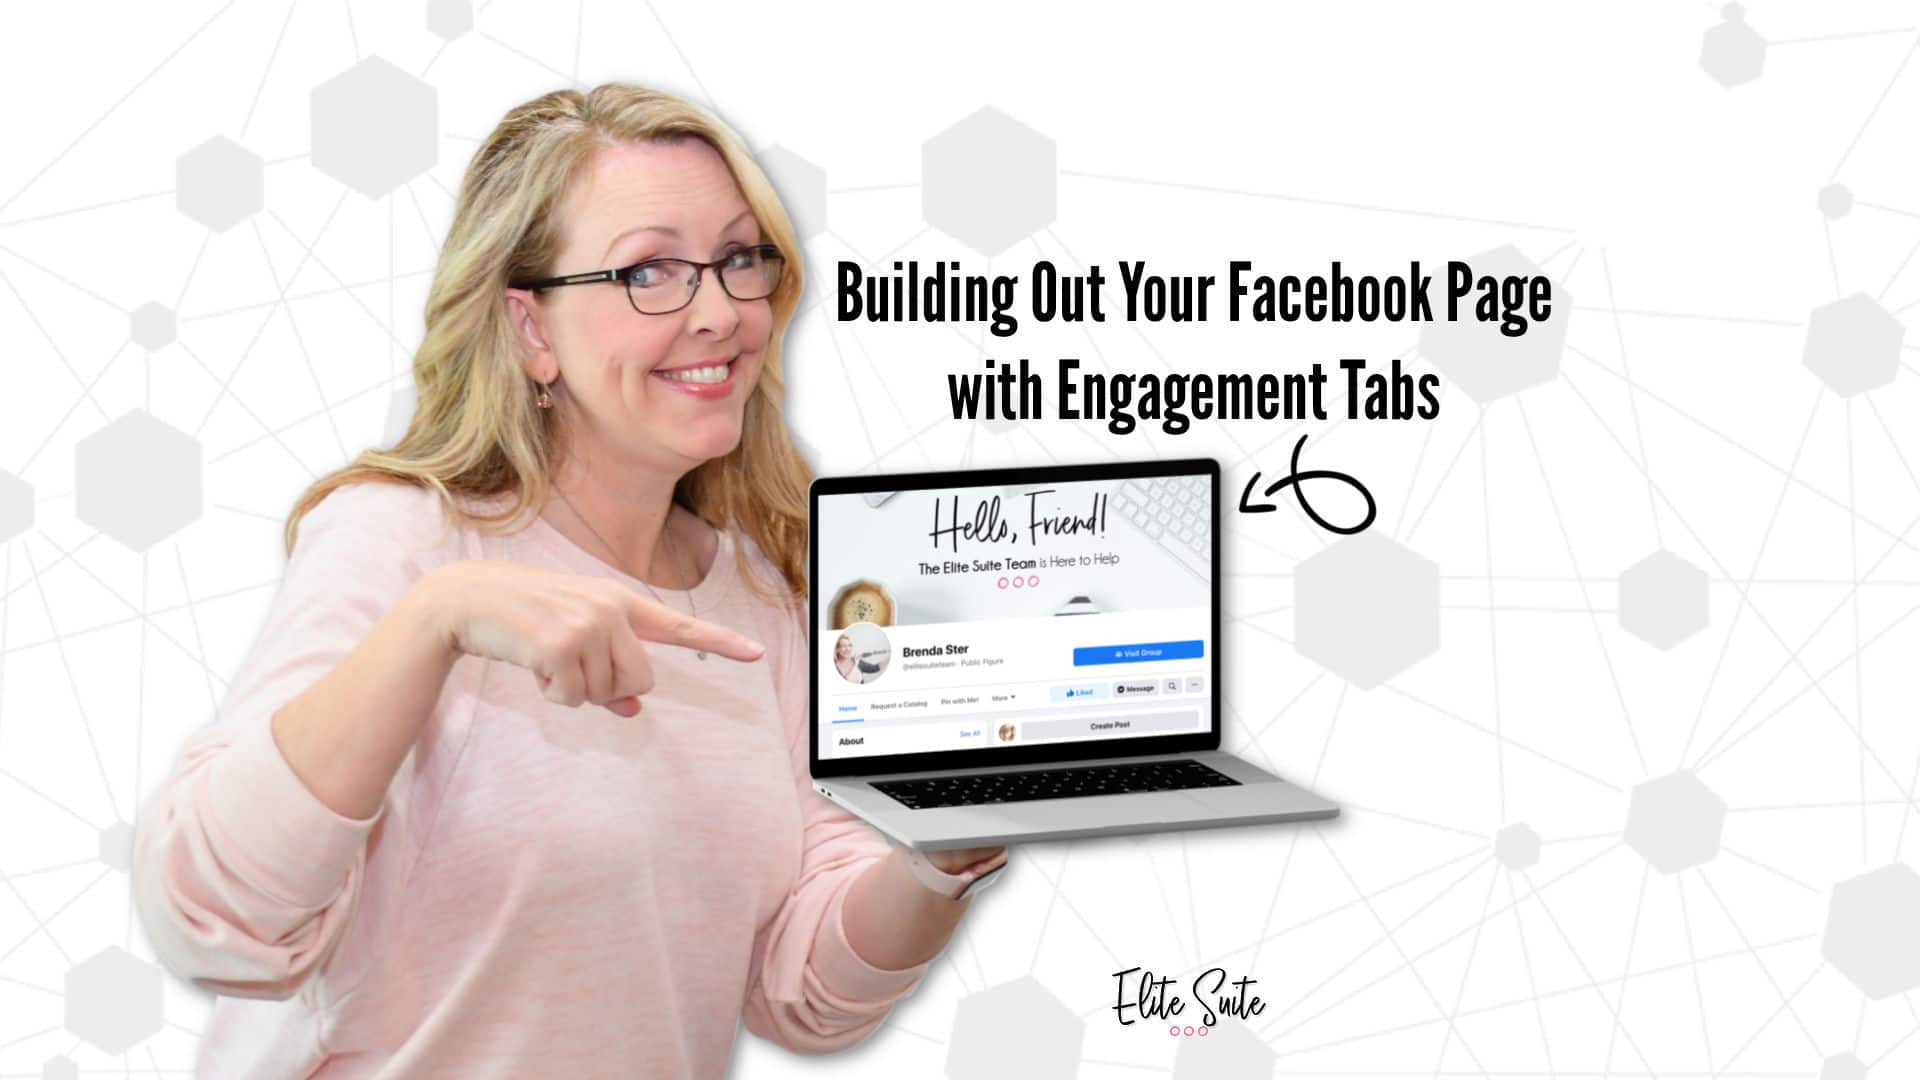 Building Out Your Facebook Page with Engagement Tabs image overlay